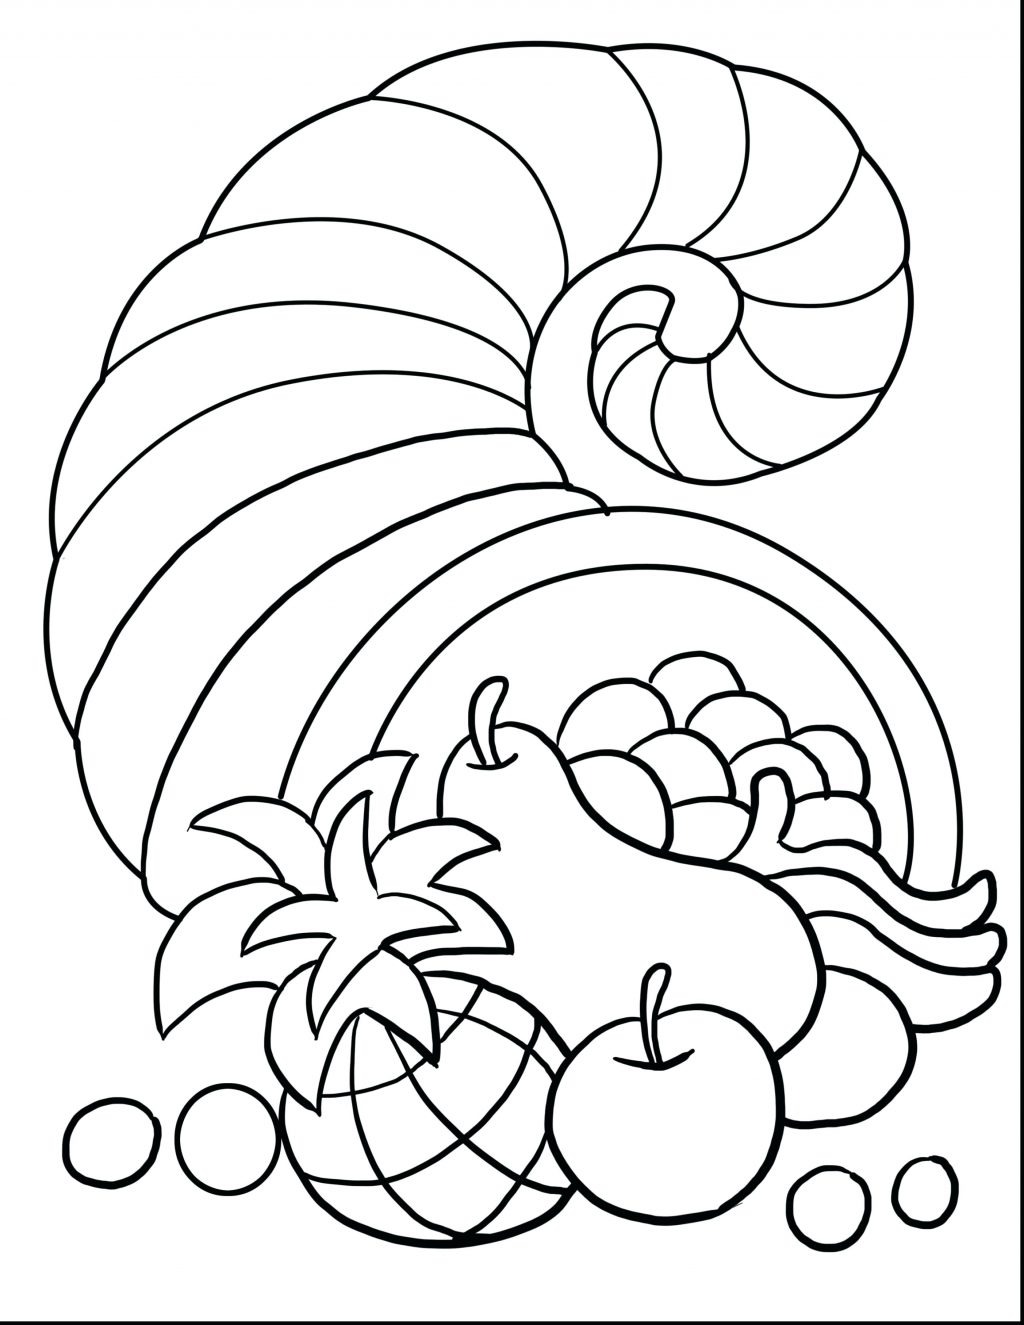 Pi Coloring Page At Getcolorings